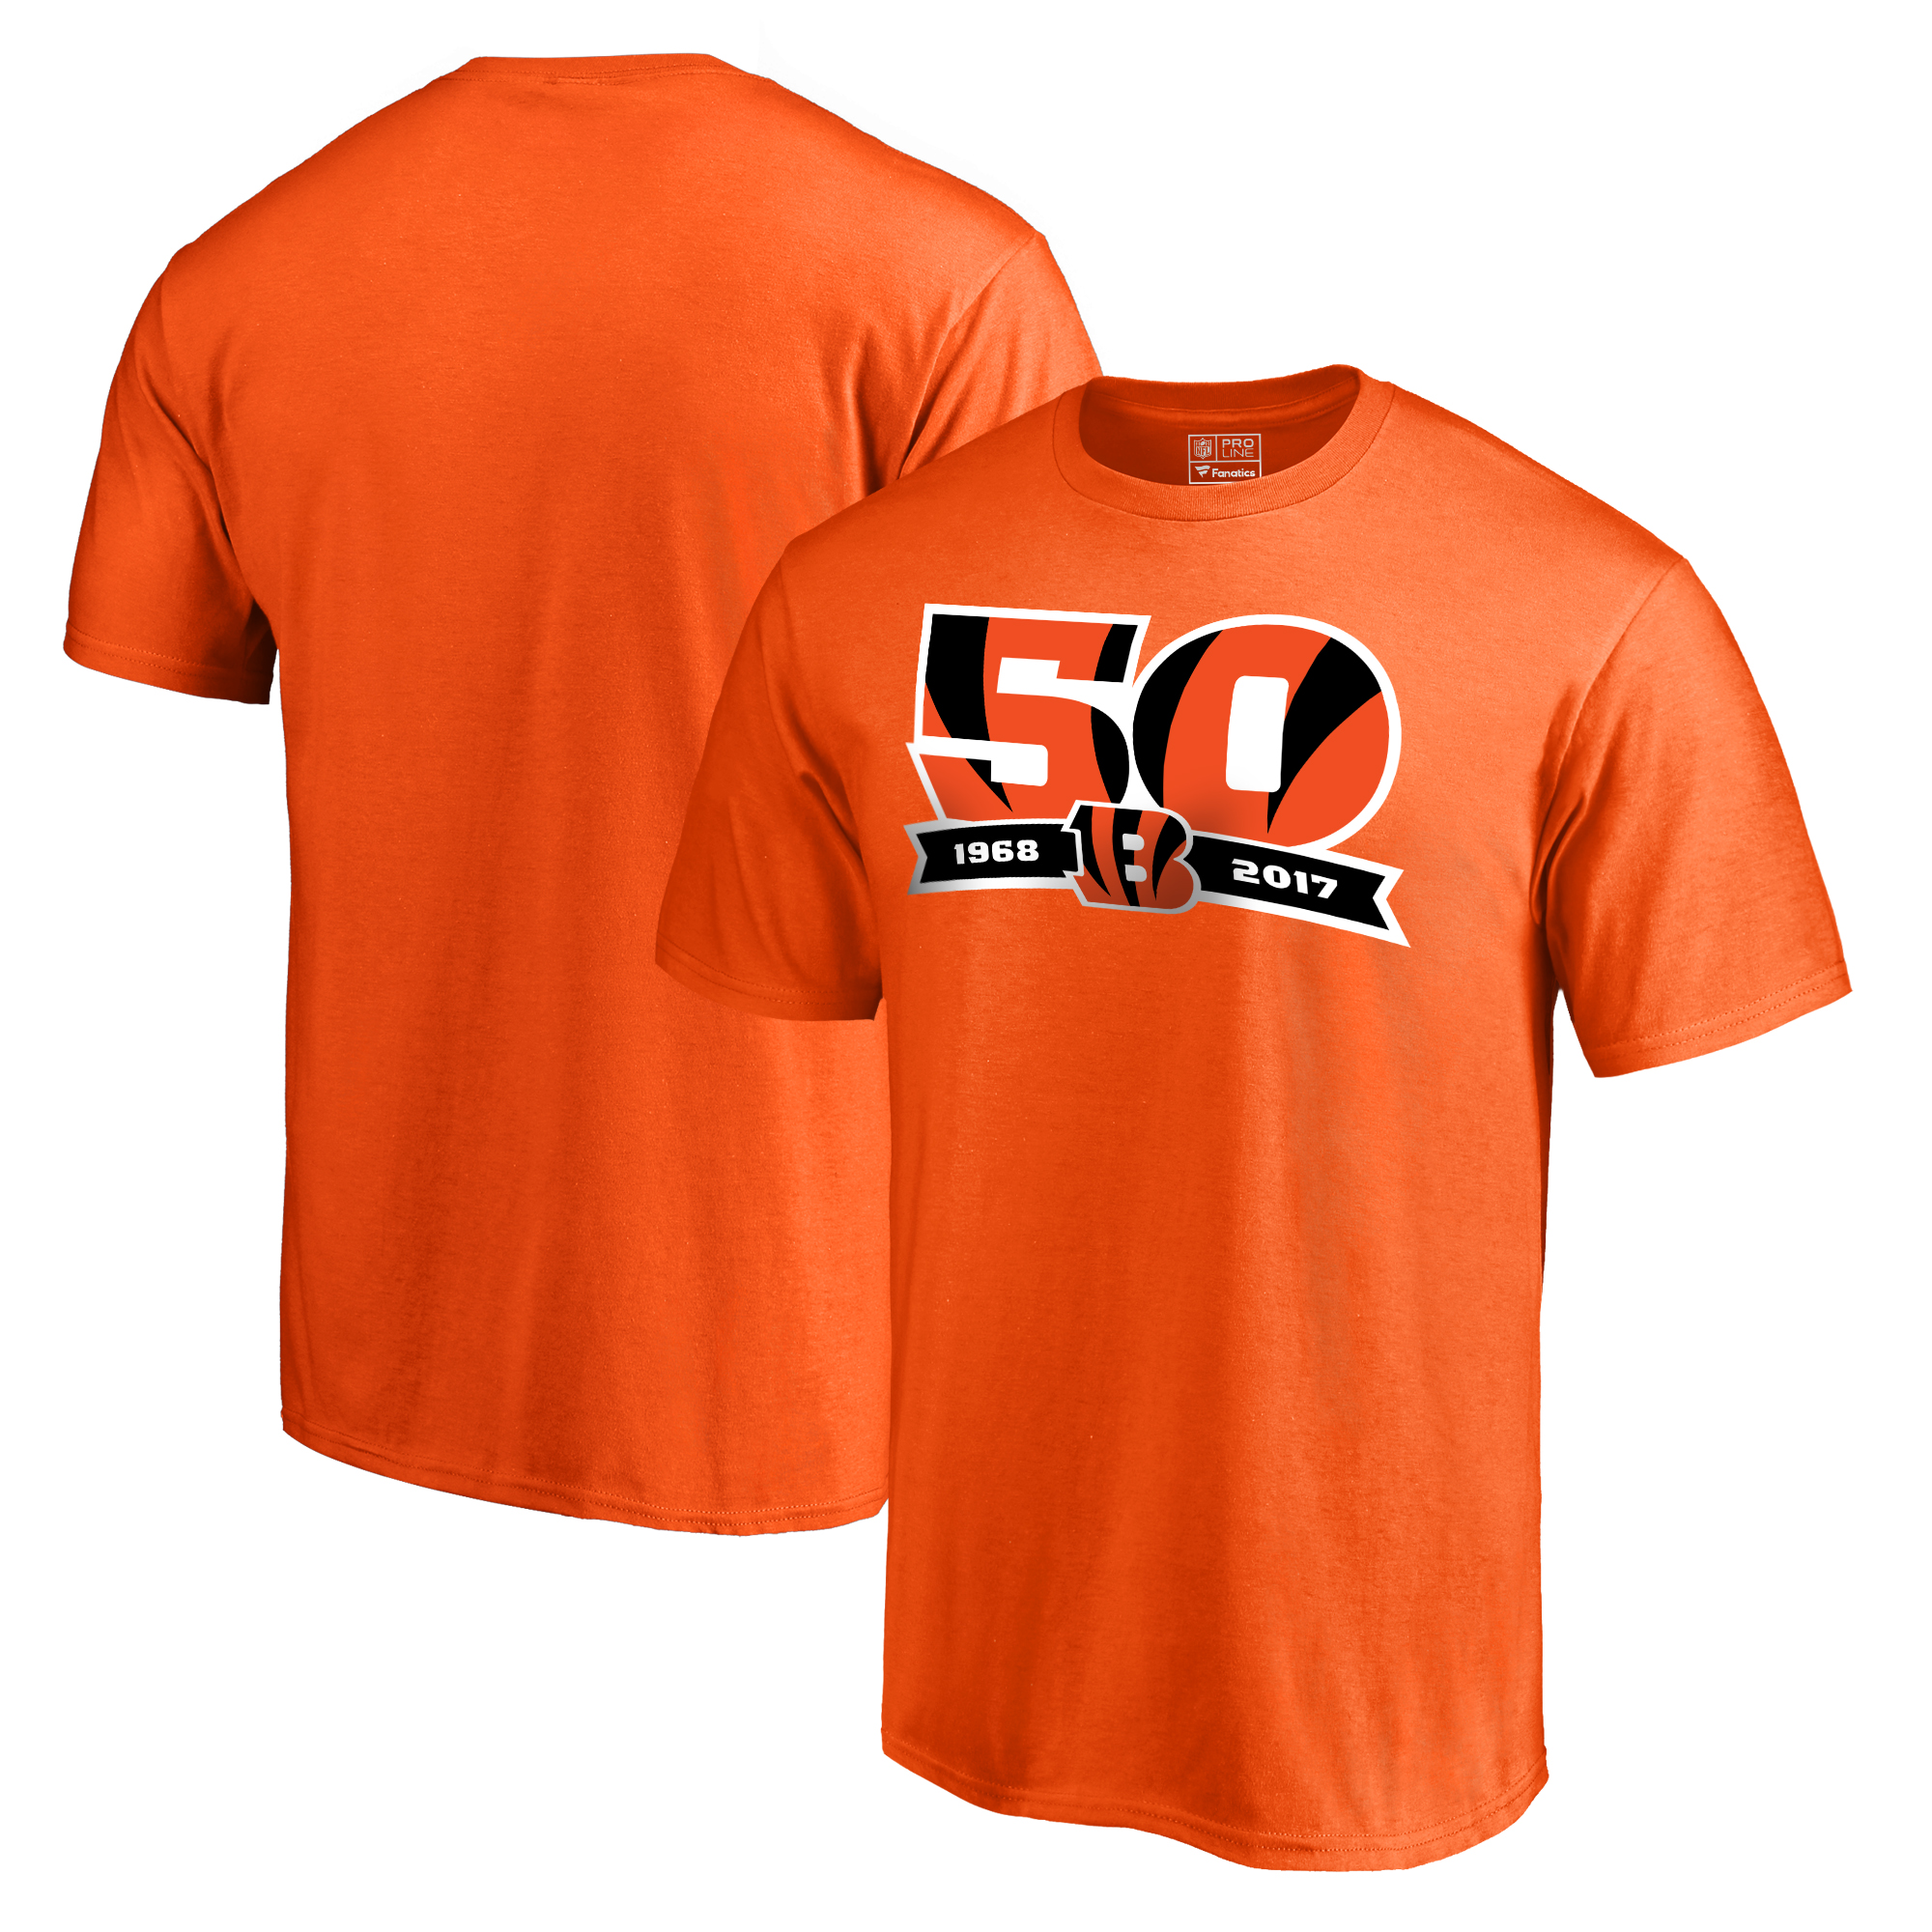 Cincinnati Bengals NFL Pro Line by Fanatics Branded 50th Anniversary T-Shirt - Orange